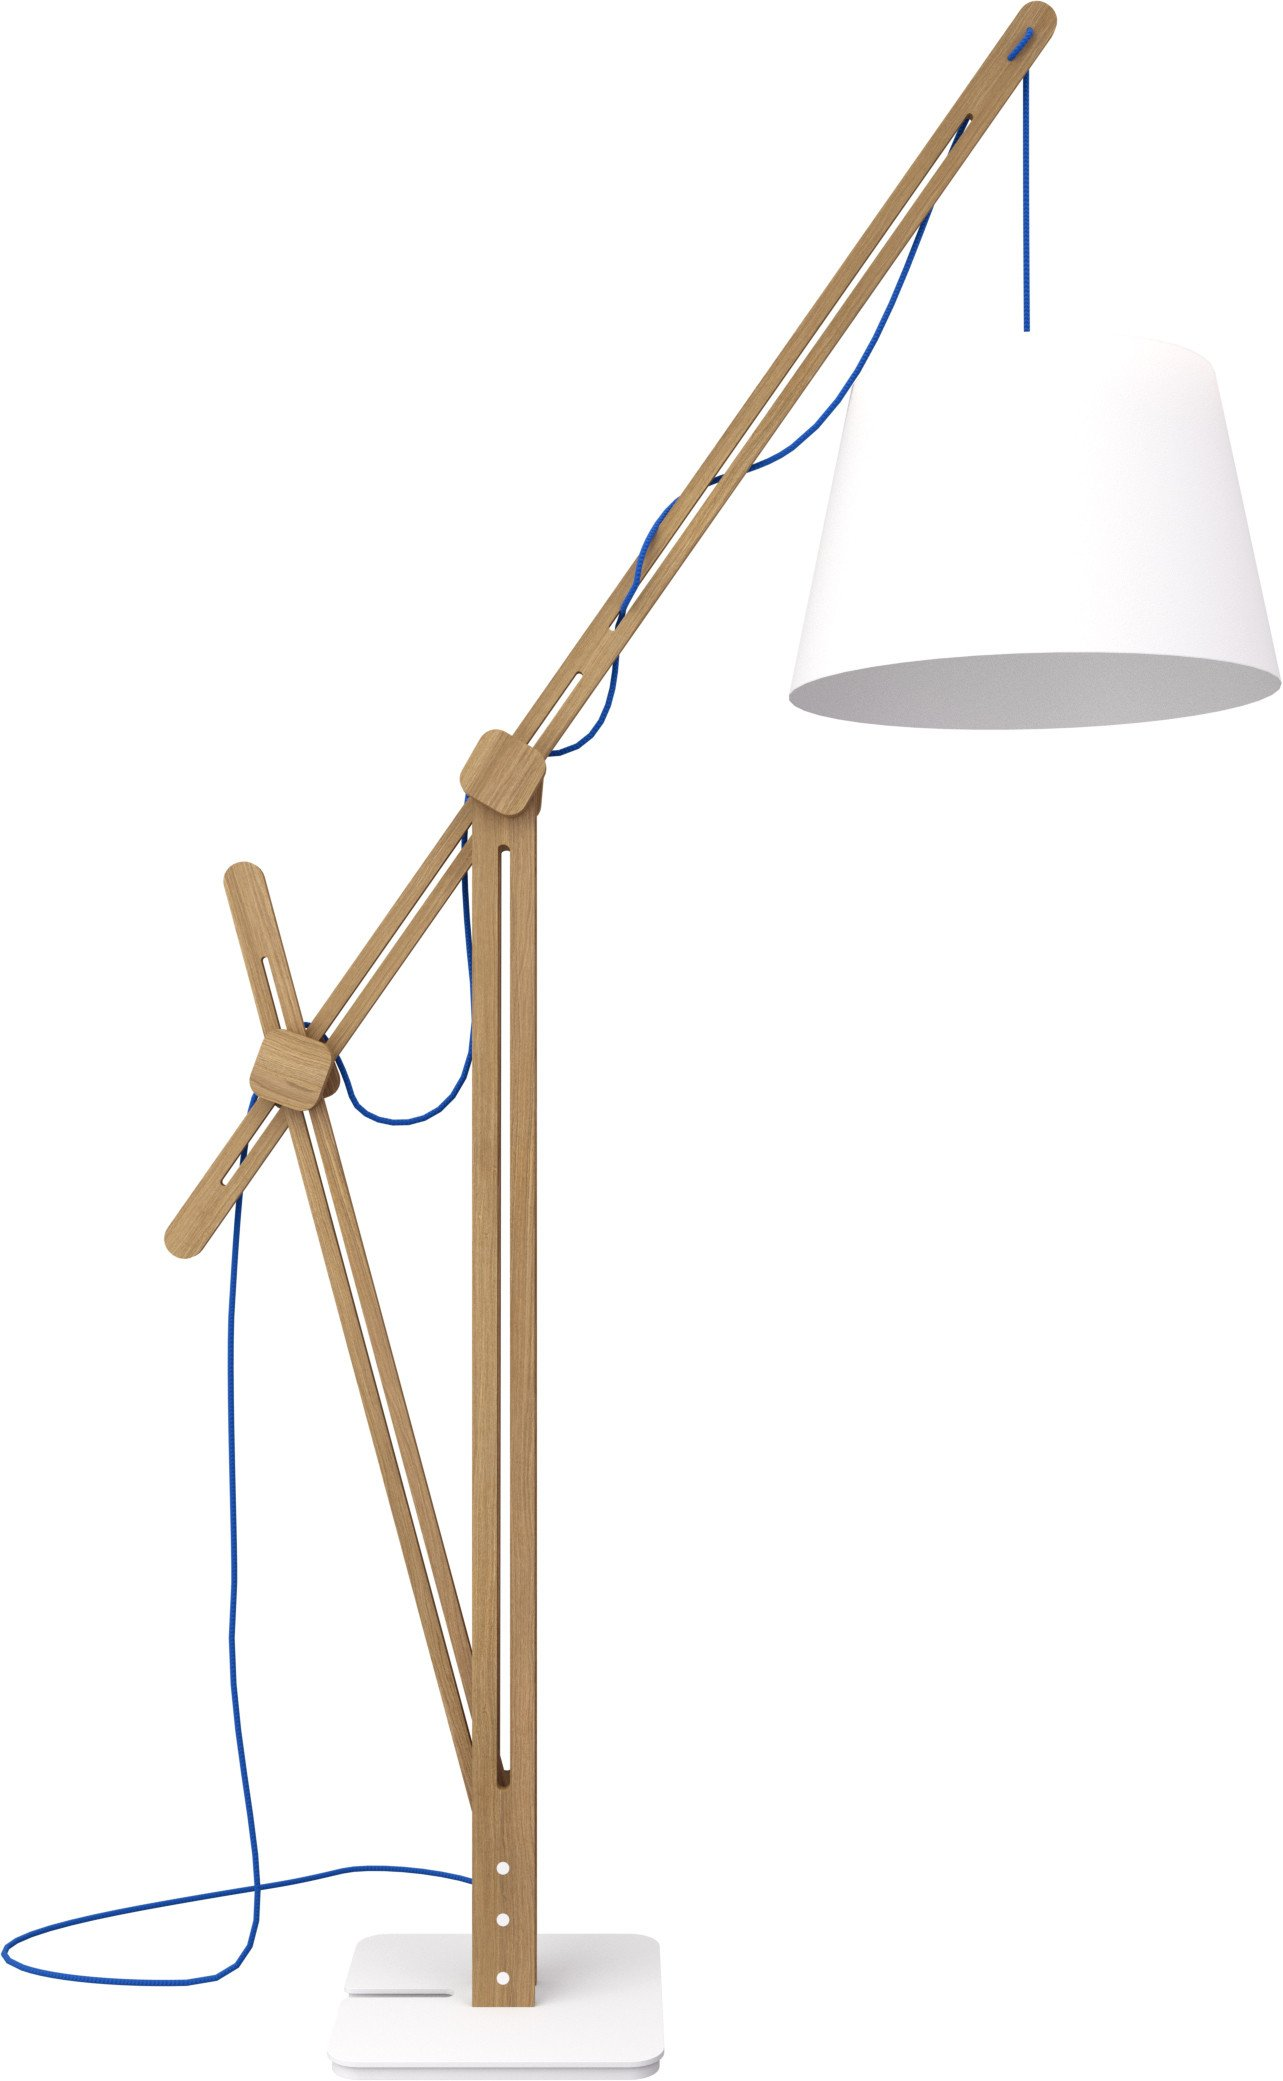 Crane Light Floor Lamp Natural Oak/White Steel/Blue Cord by J. Klimas for LOFT Decora